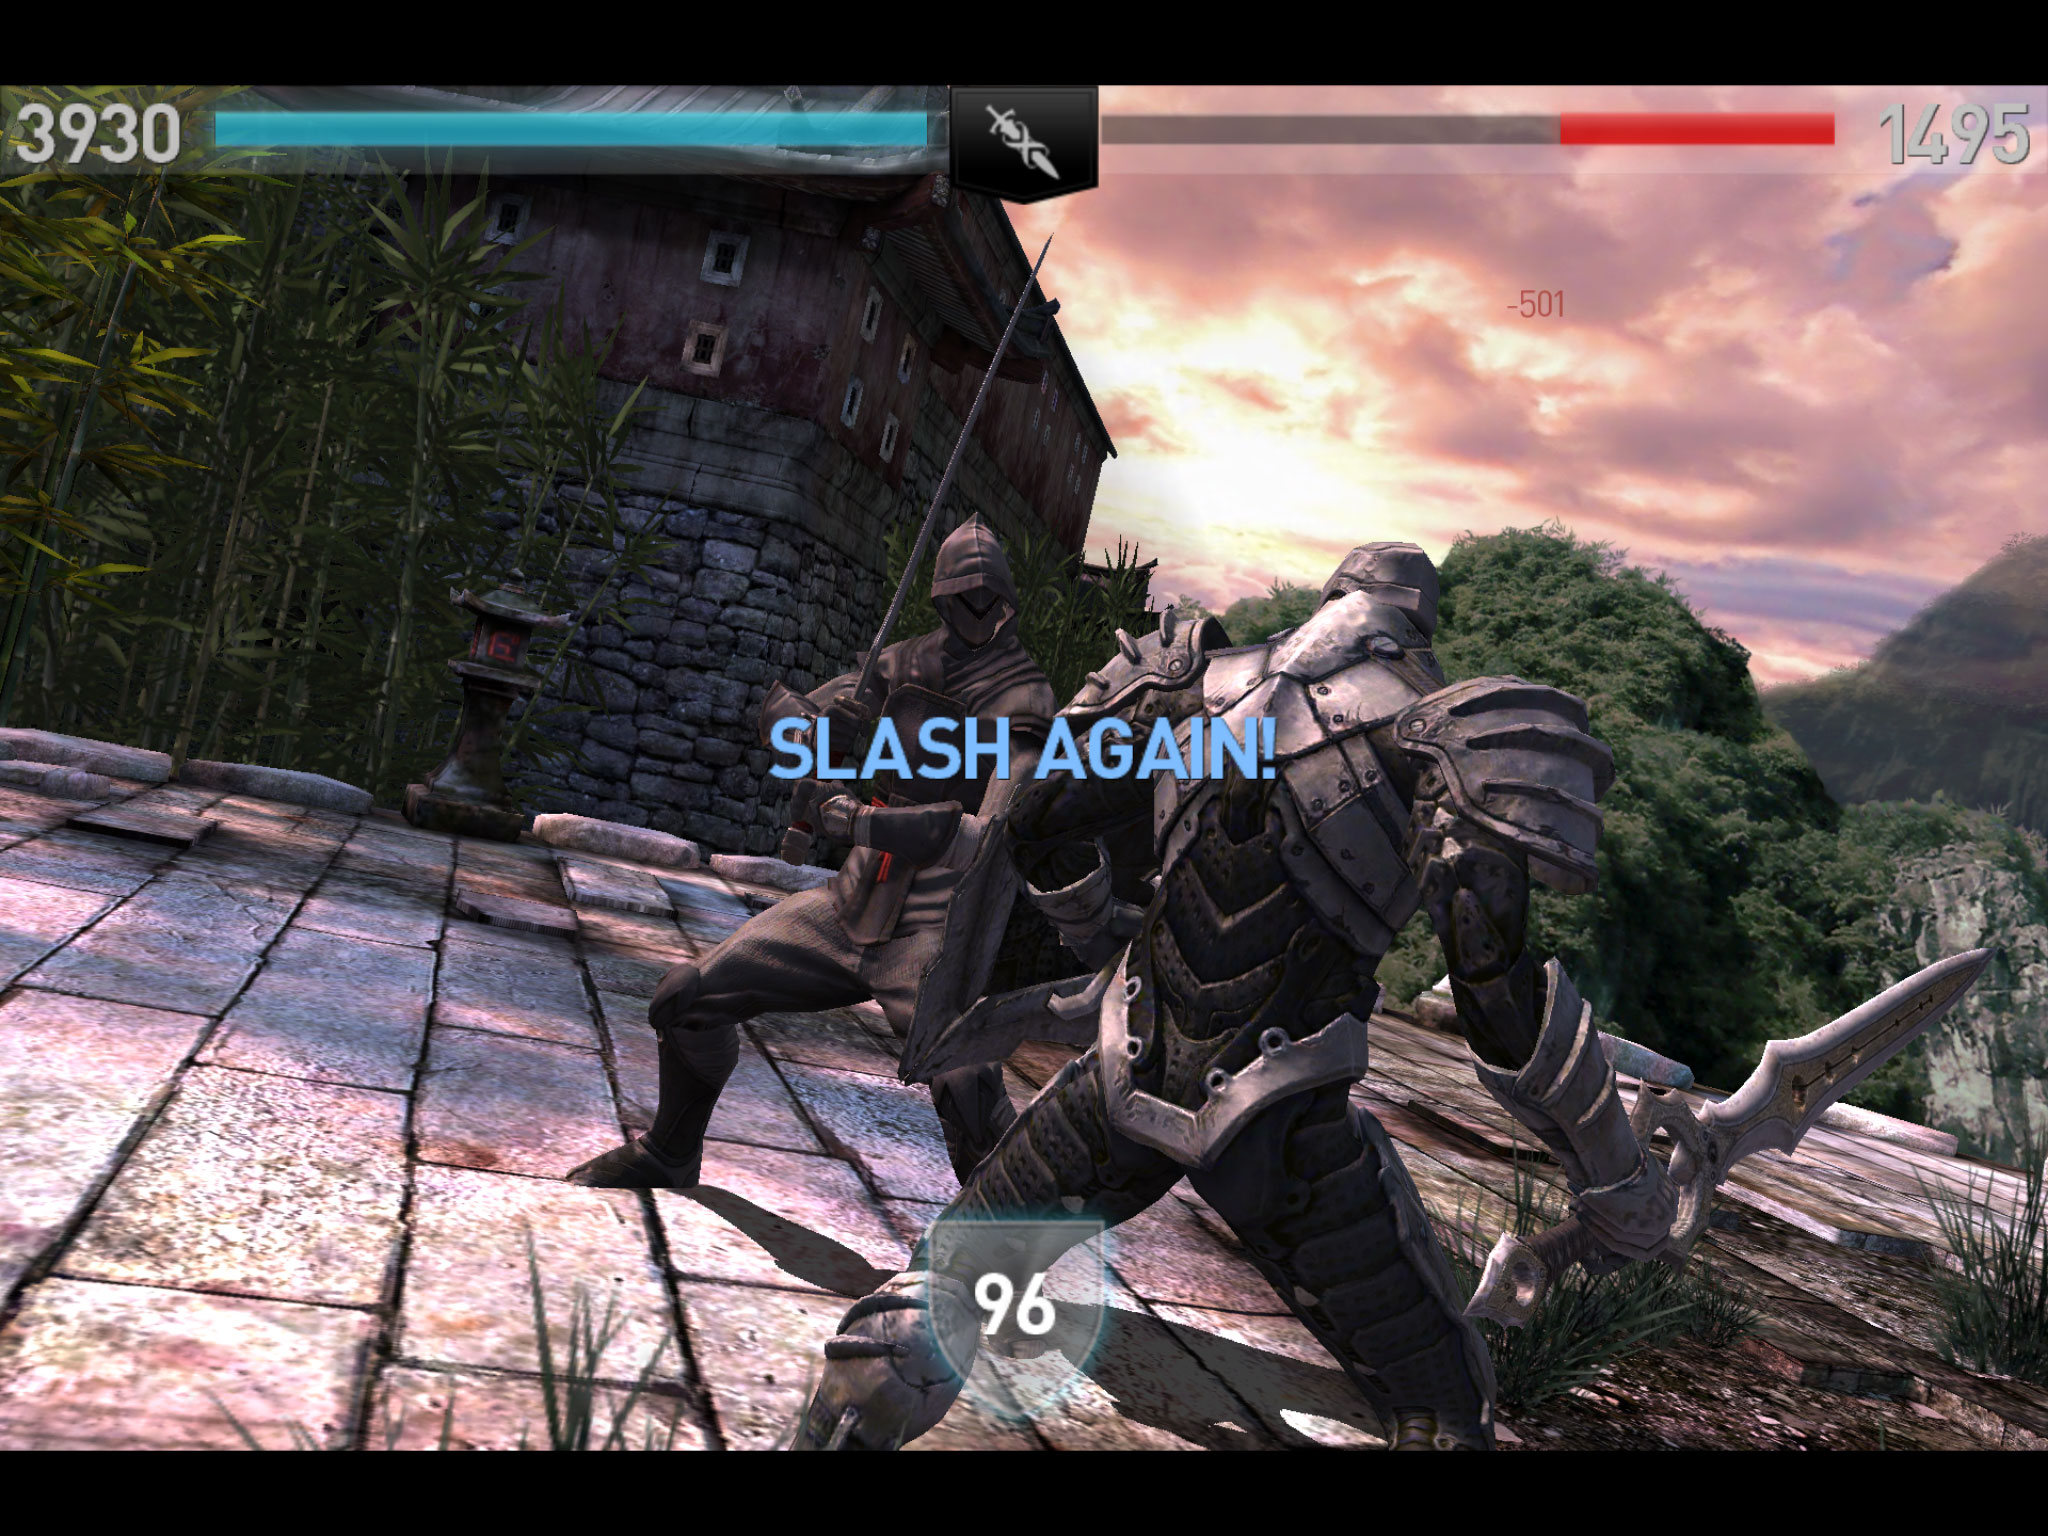 Slash and hack your way through this second installment of the Infinity Blade series.